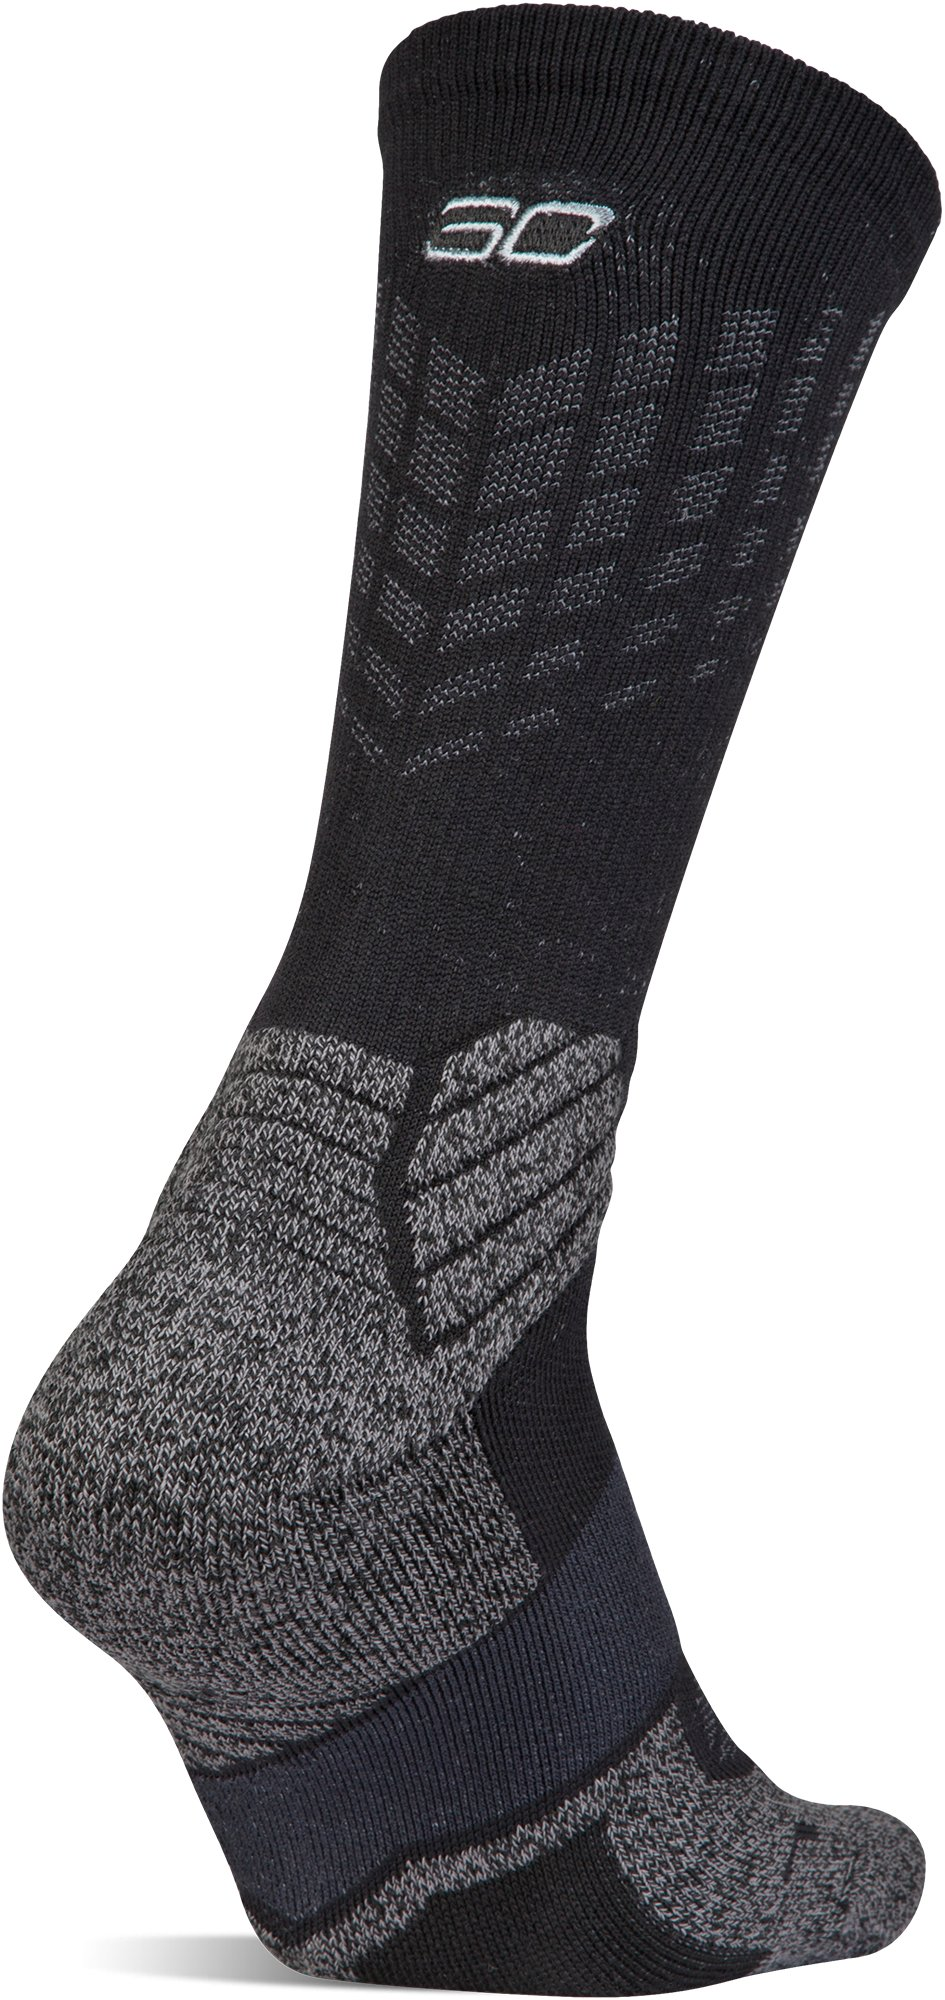 Men's SC30 Drive Crew Socks, Black ,